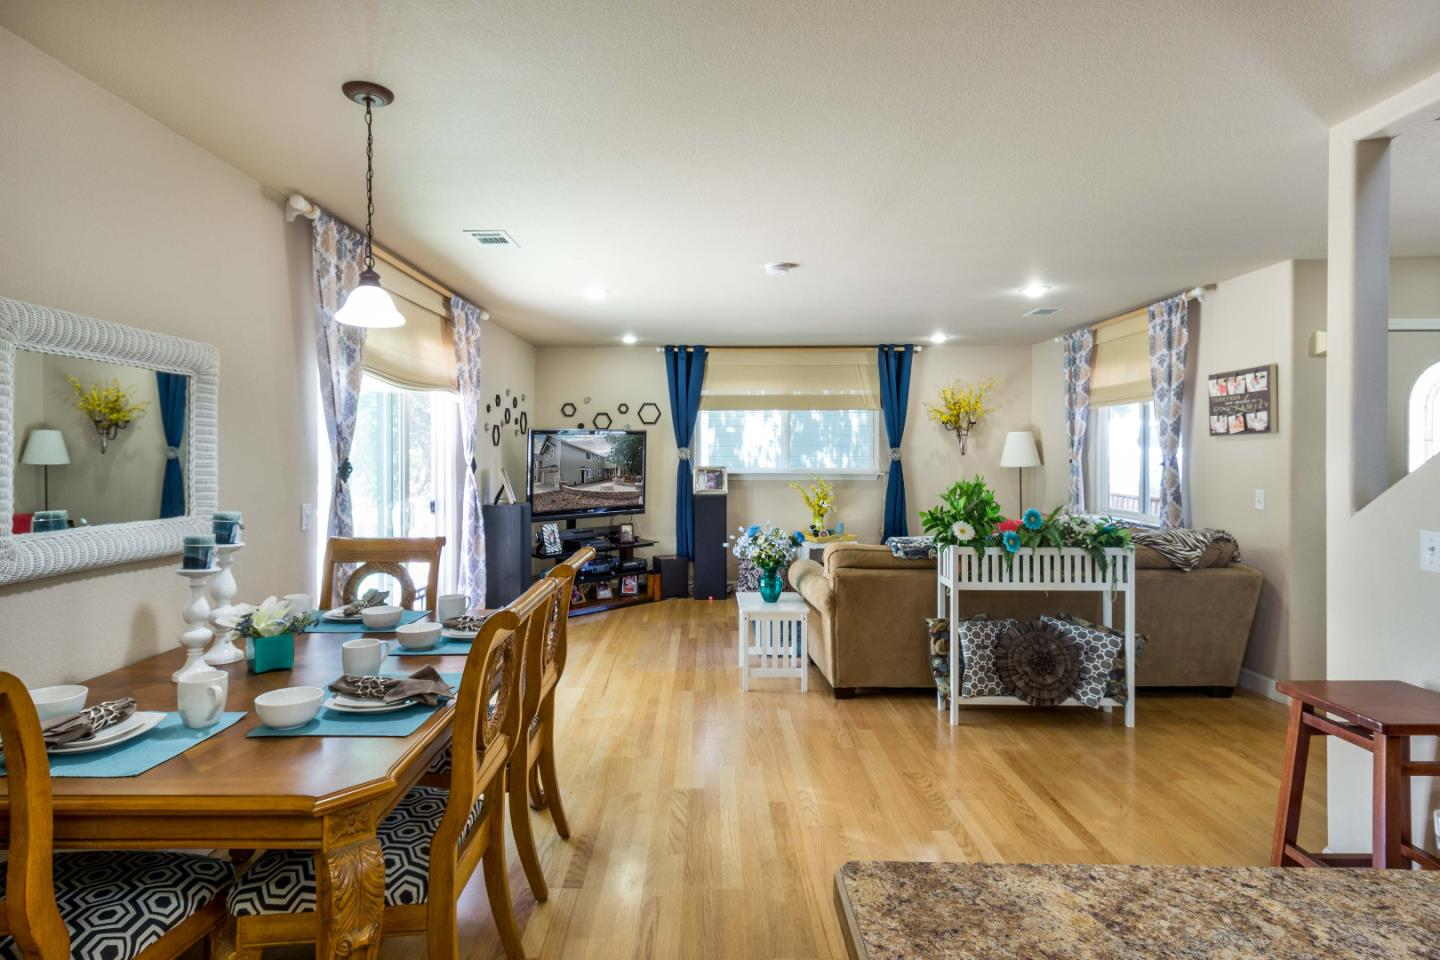 Additional photo for property listing at 8269 Anchor Way  Bradley, California 93426 United States